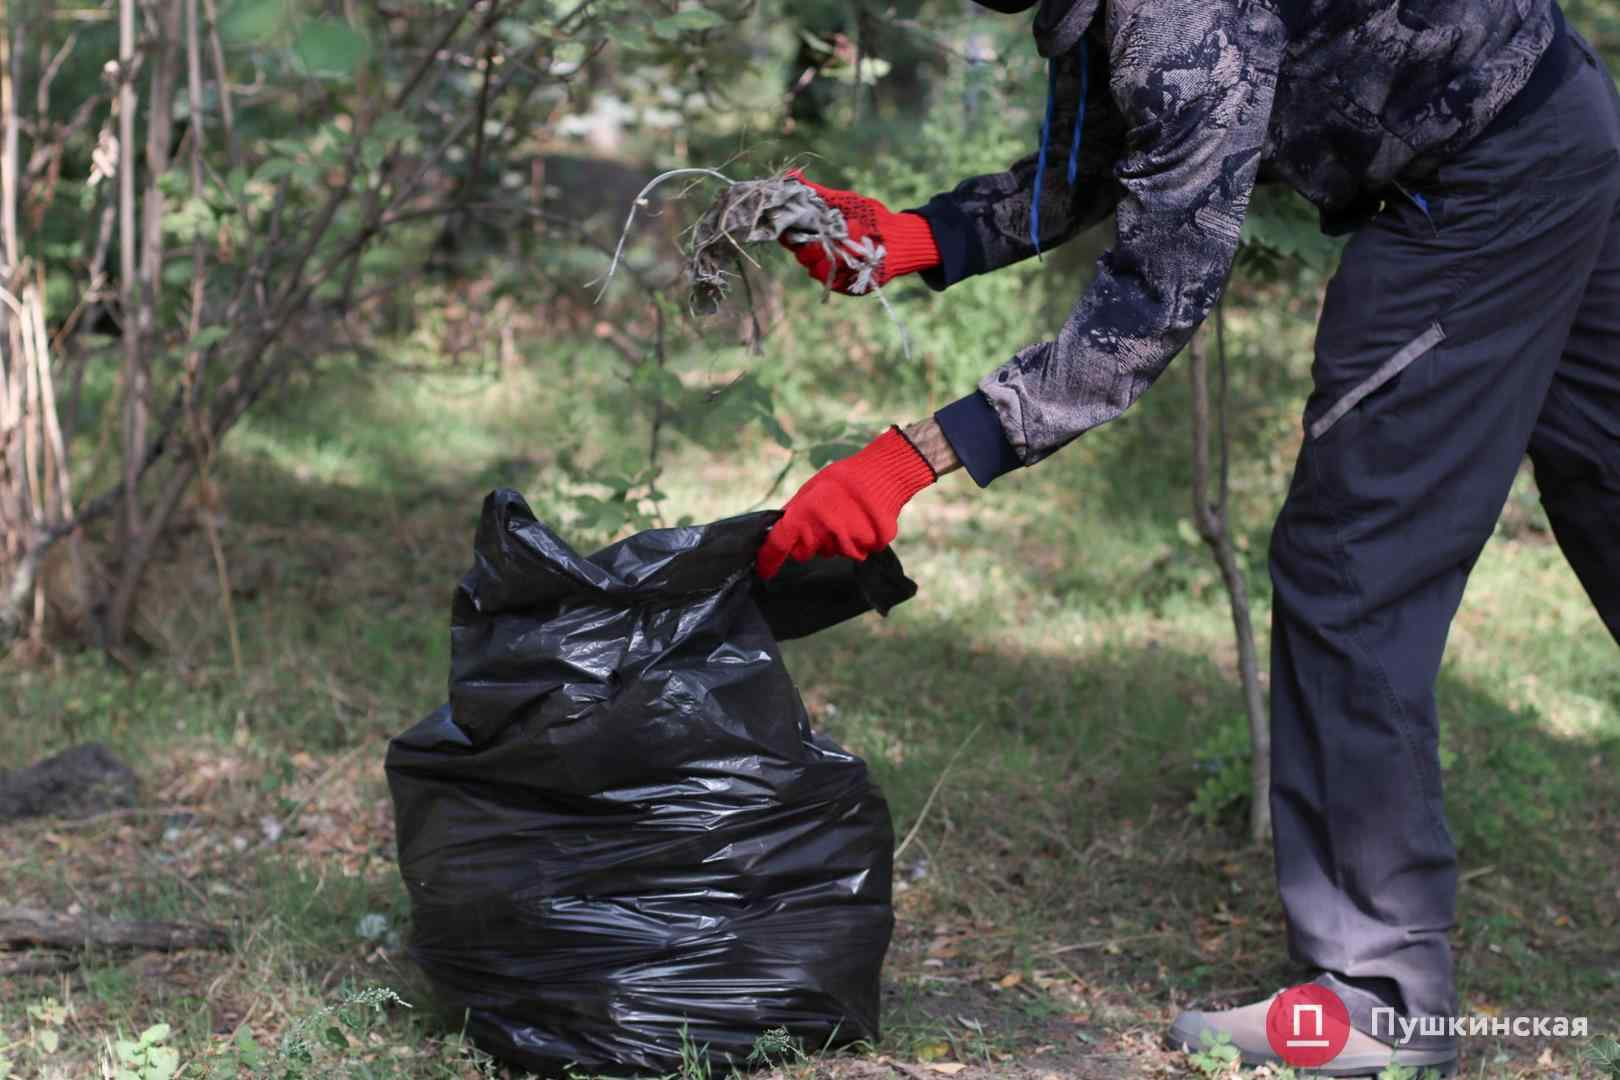 World cleanup day: в Одессе убирают от мусора Дюковский парк. Фото